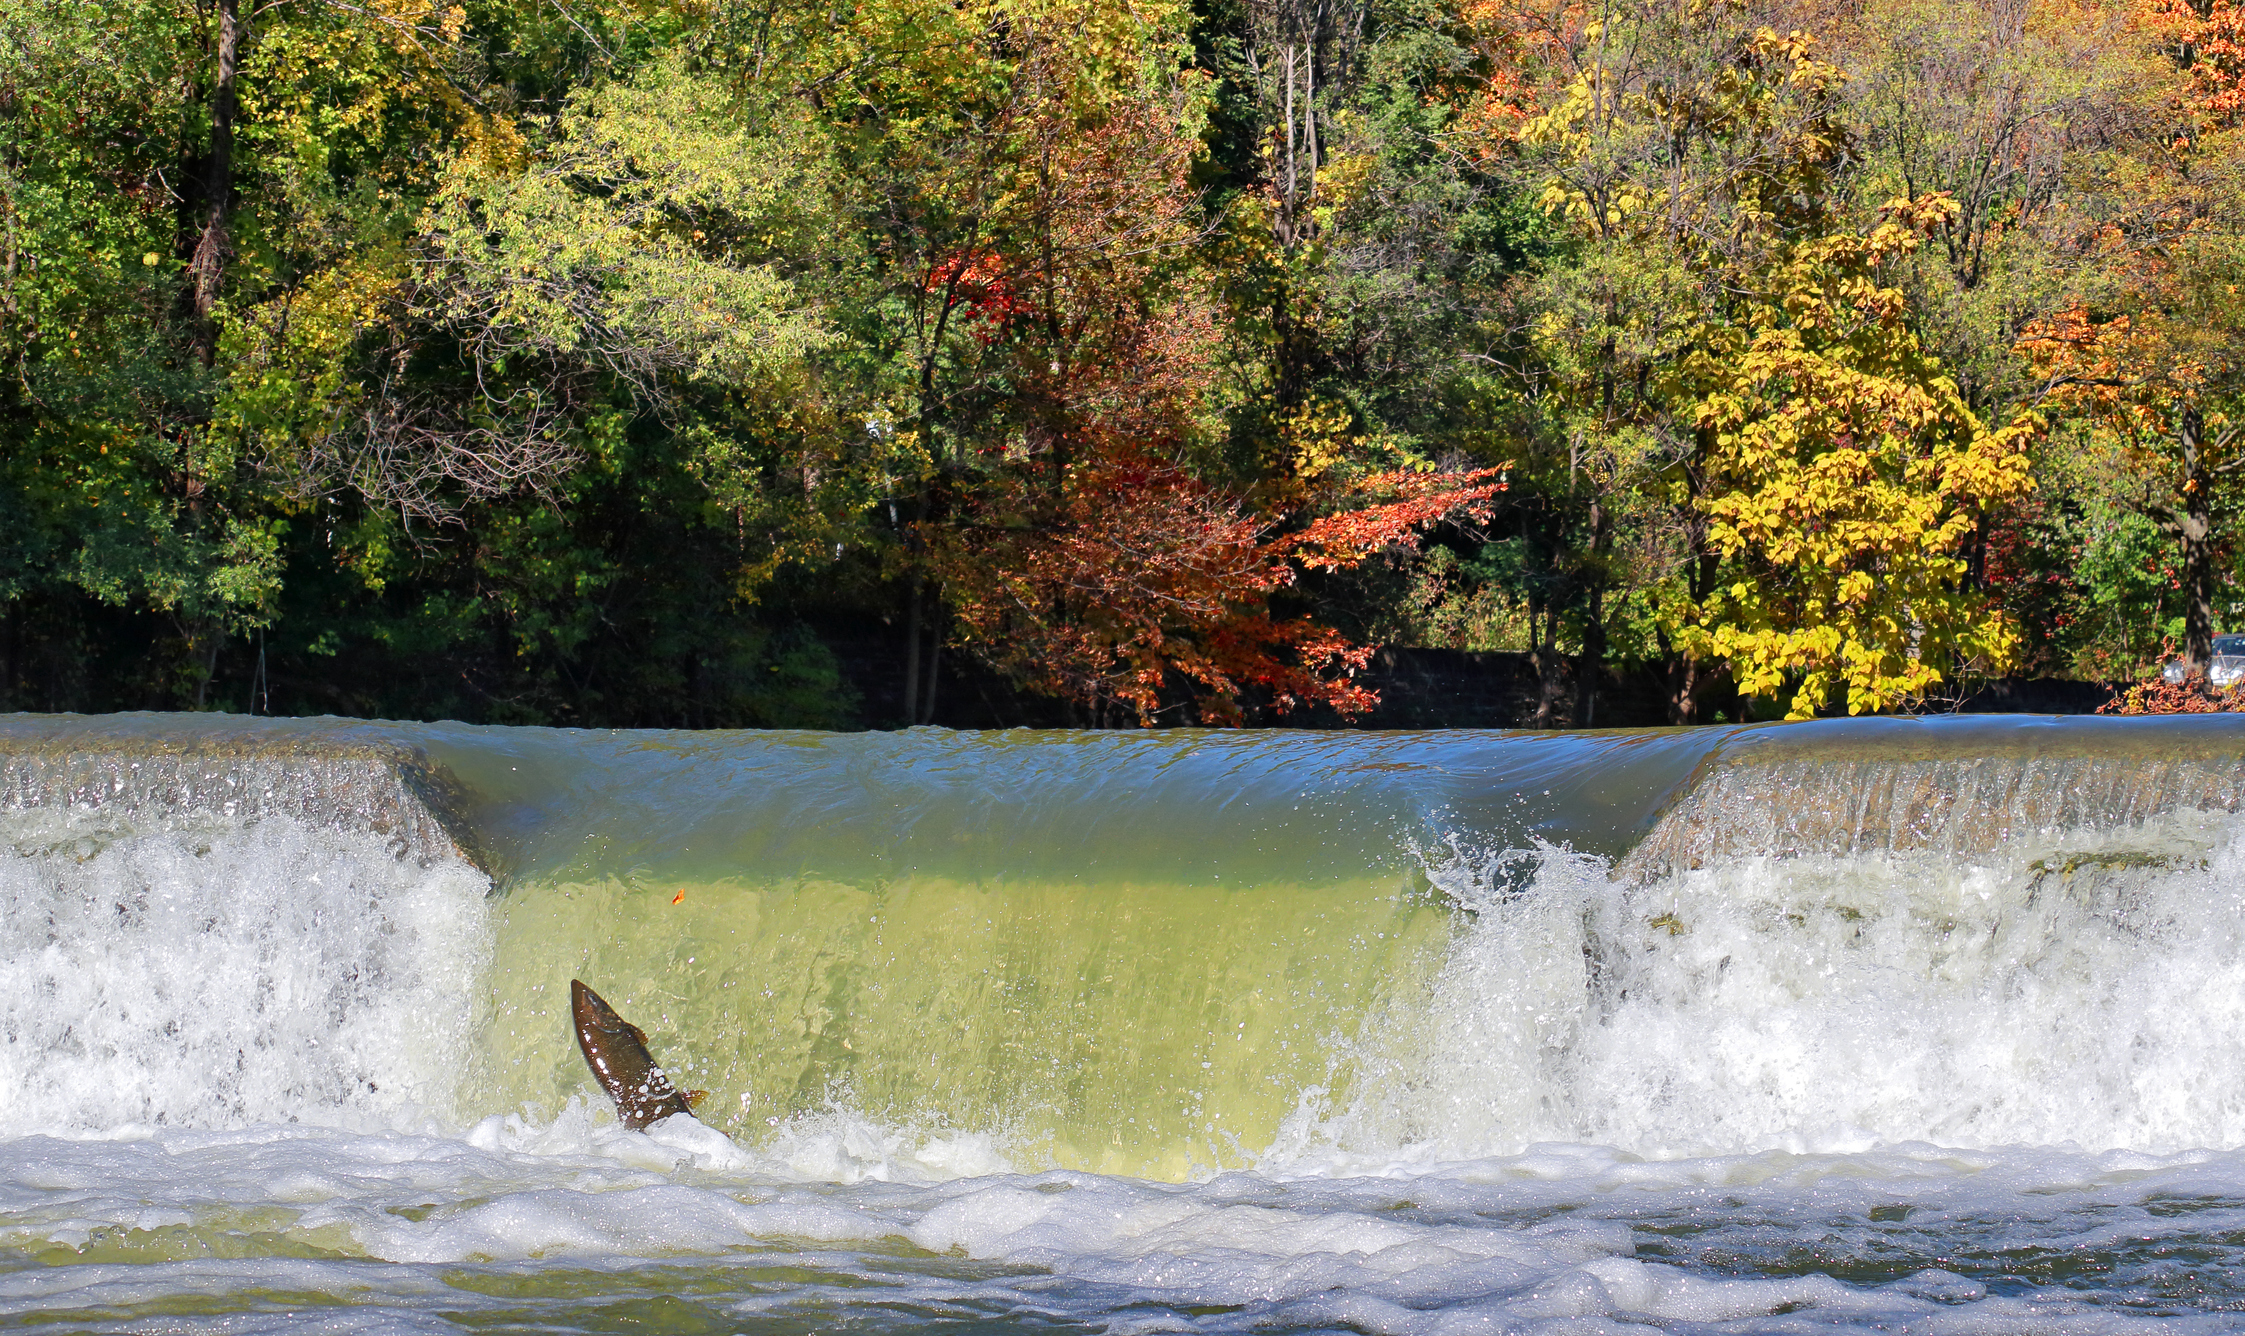 Ensuring water intakes are safe for local fish is critical for some drinking water facilities.